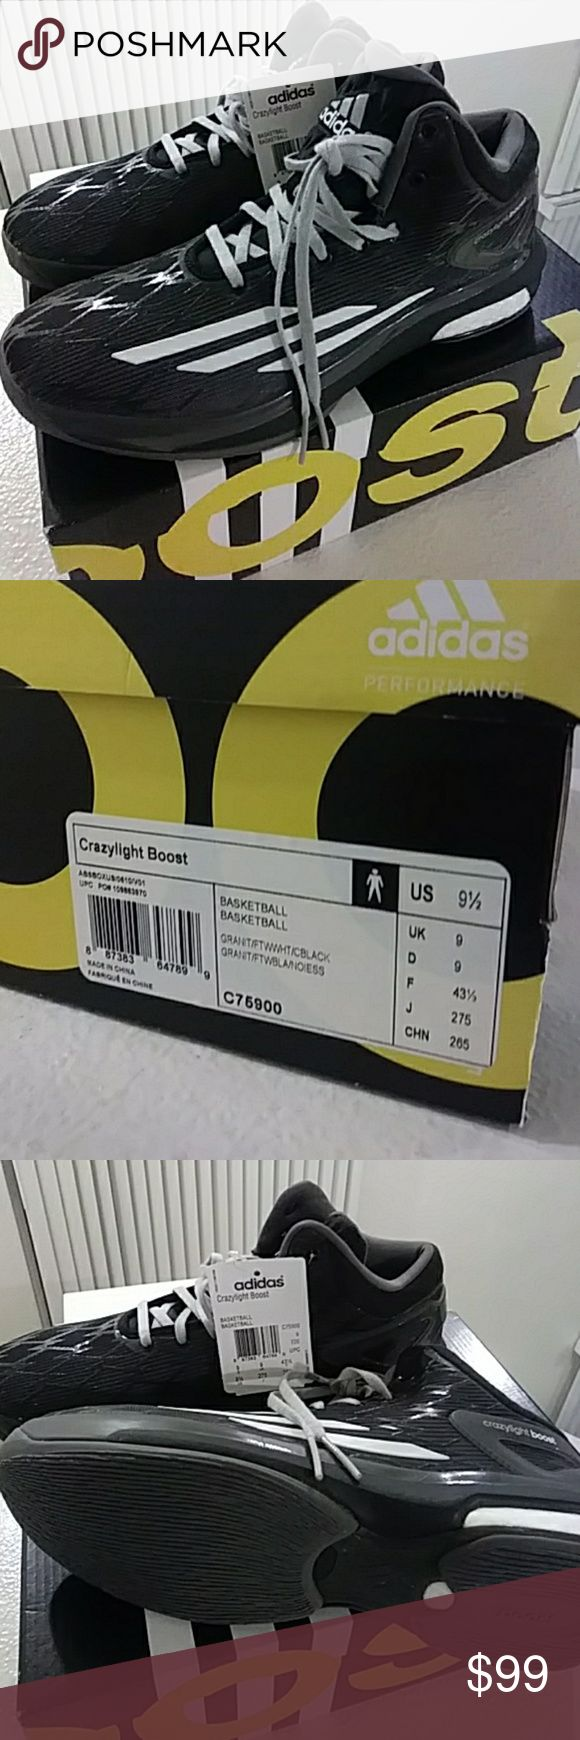 Adidas Basketball Shoes Crazylight Boost Brand New with tags, size 9.5 Men US adidas Shoes Athletic Shoes